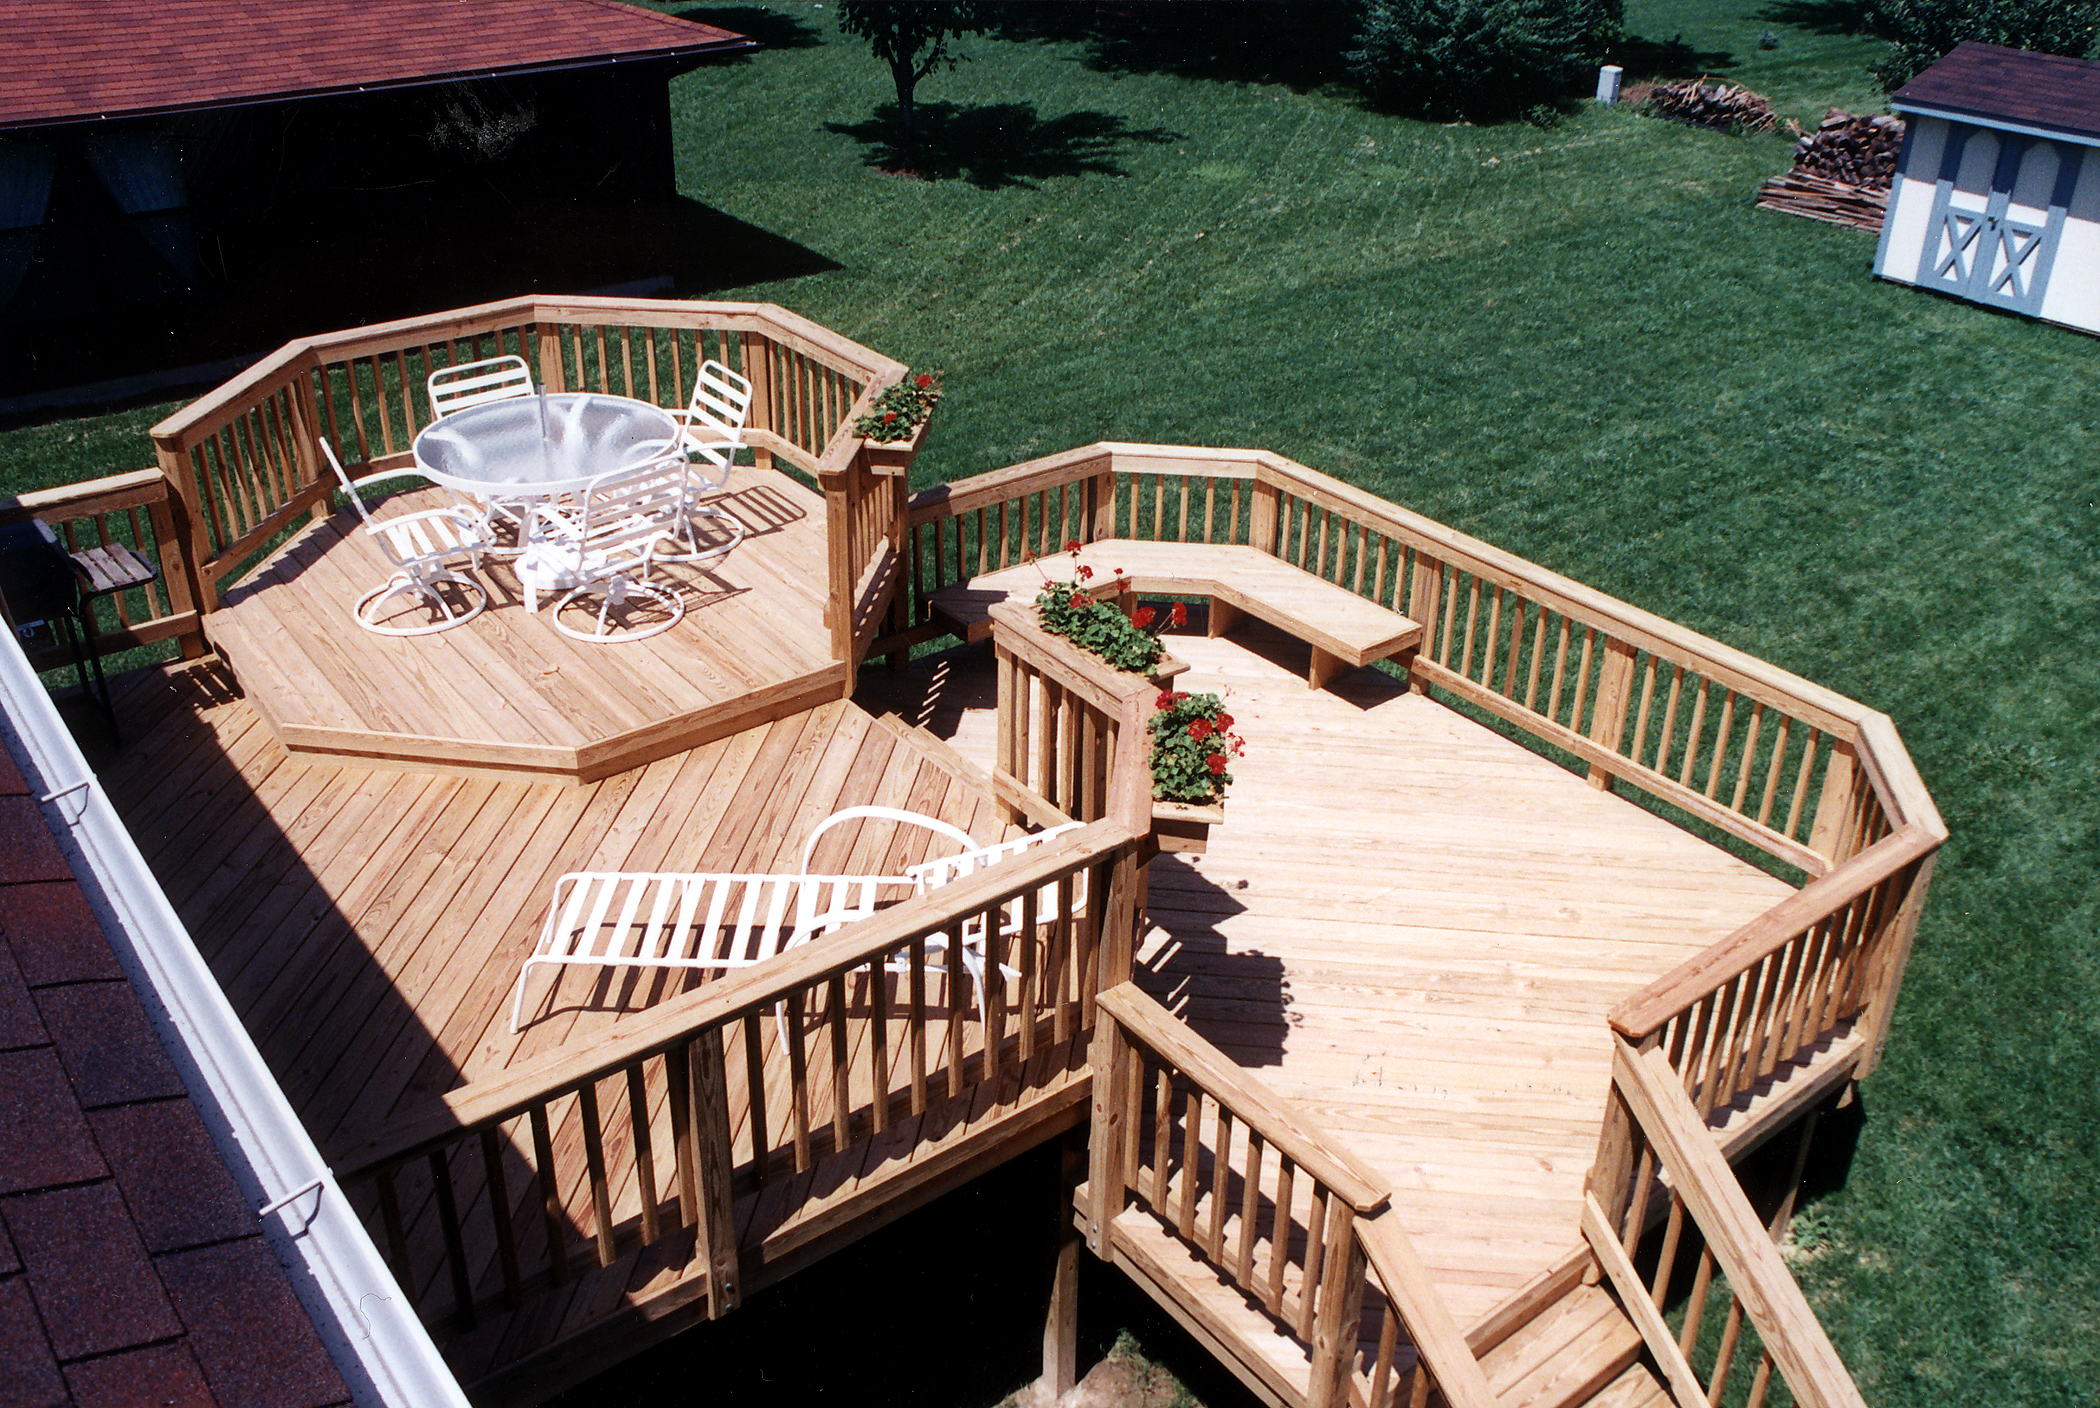 Outdoor Living St. Louis | St. Louis decks, screened ... on Tiered Patio Ideas id=70352